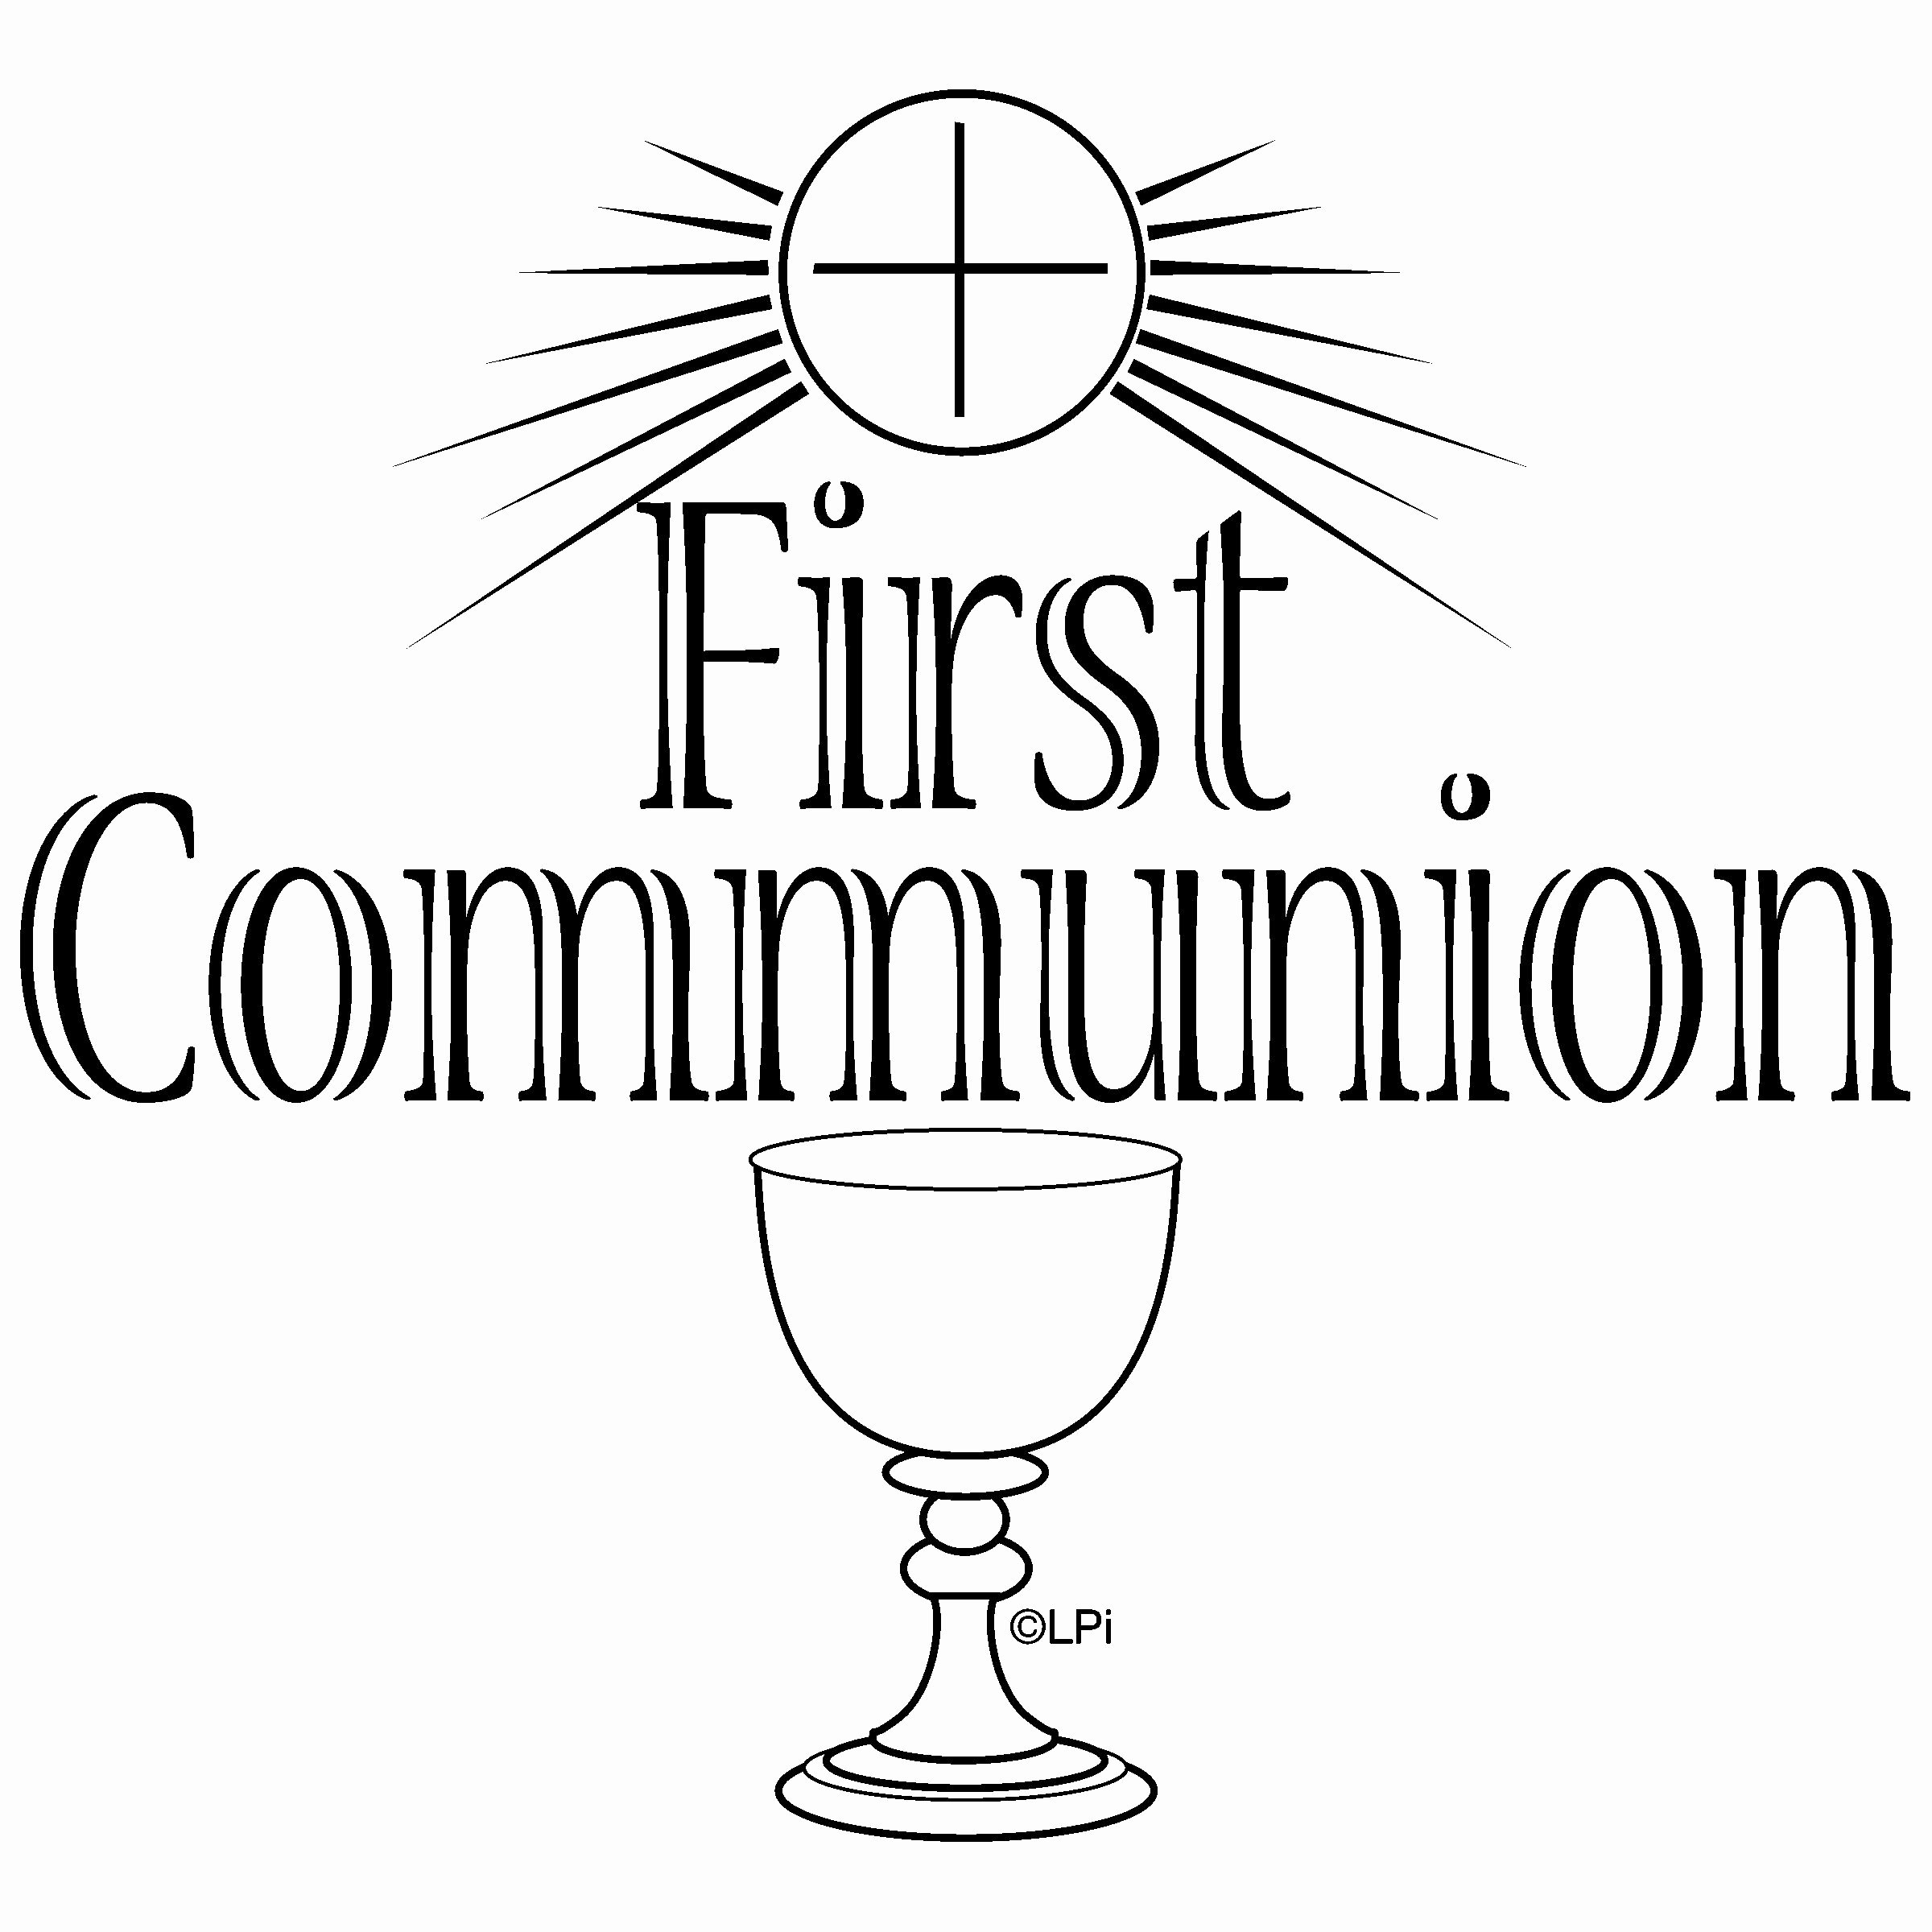 First Communion Banner Printable Templates Inspirational Pin by Shainna Poulin On Party Ideas